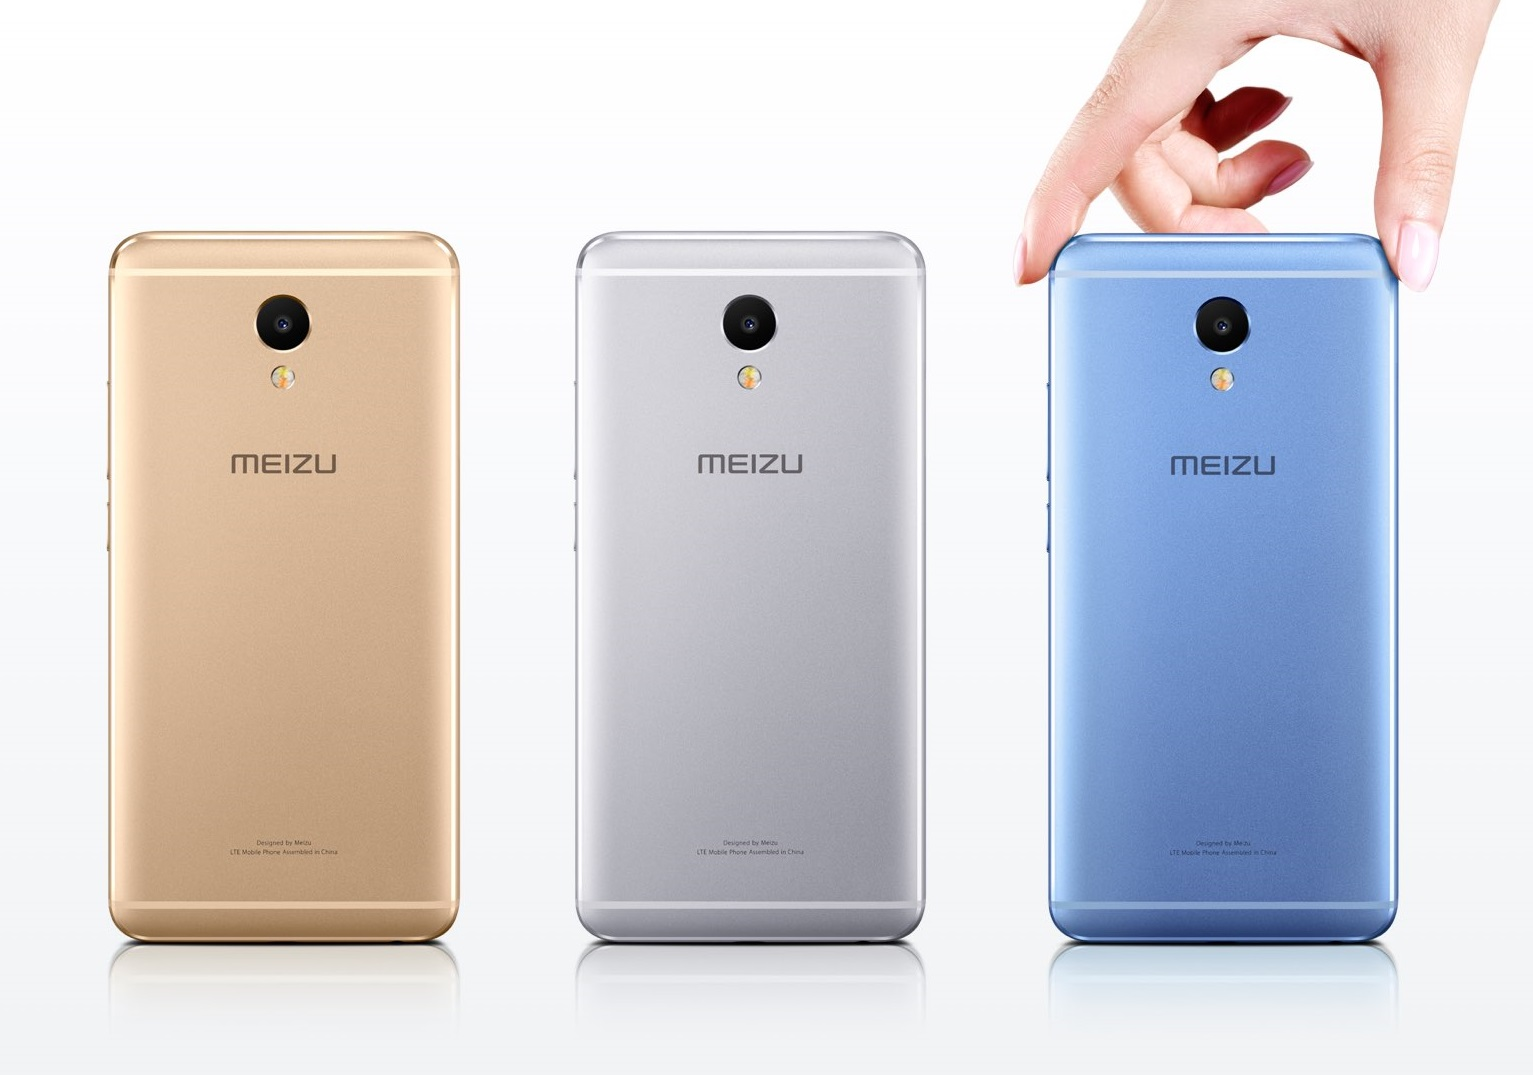 Meizu Blue Charm M5 Note Successor To The M3 Note With